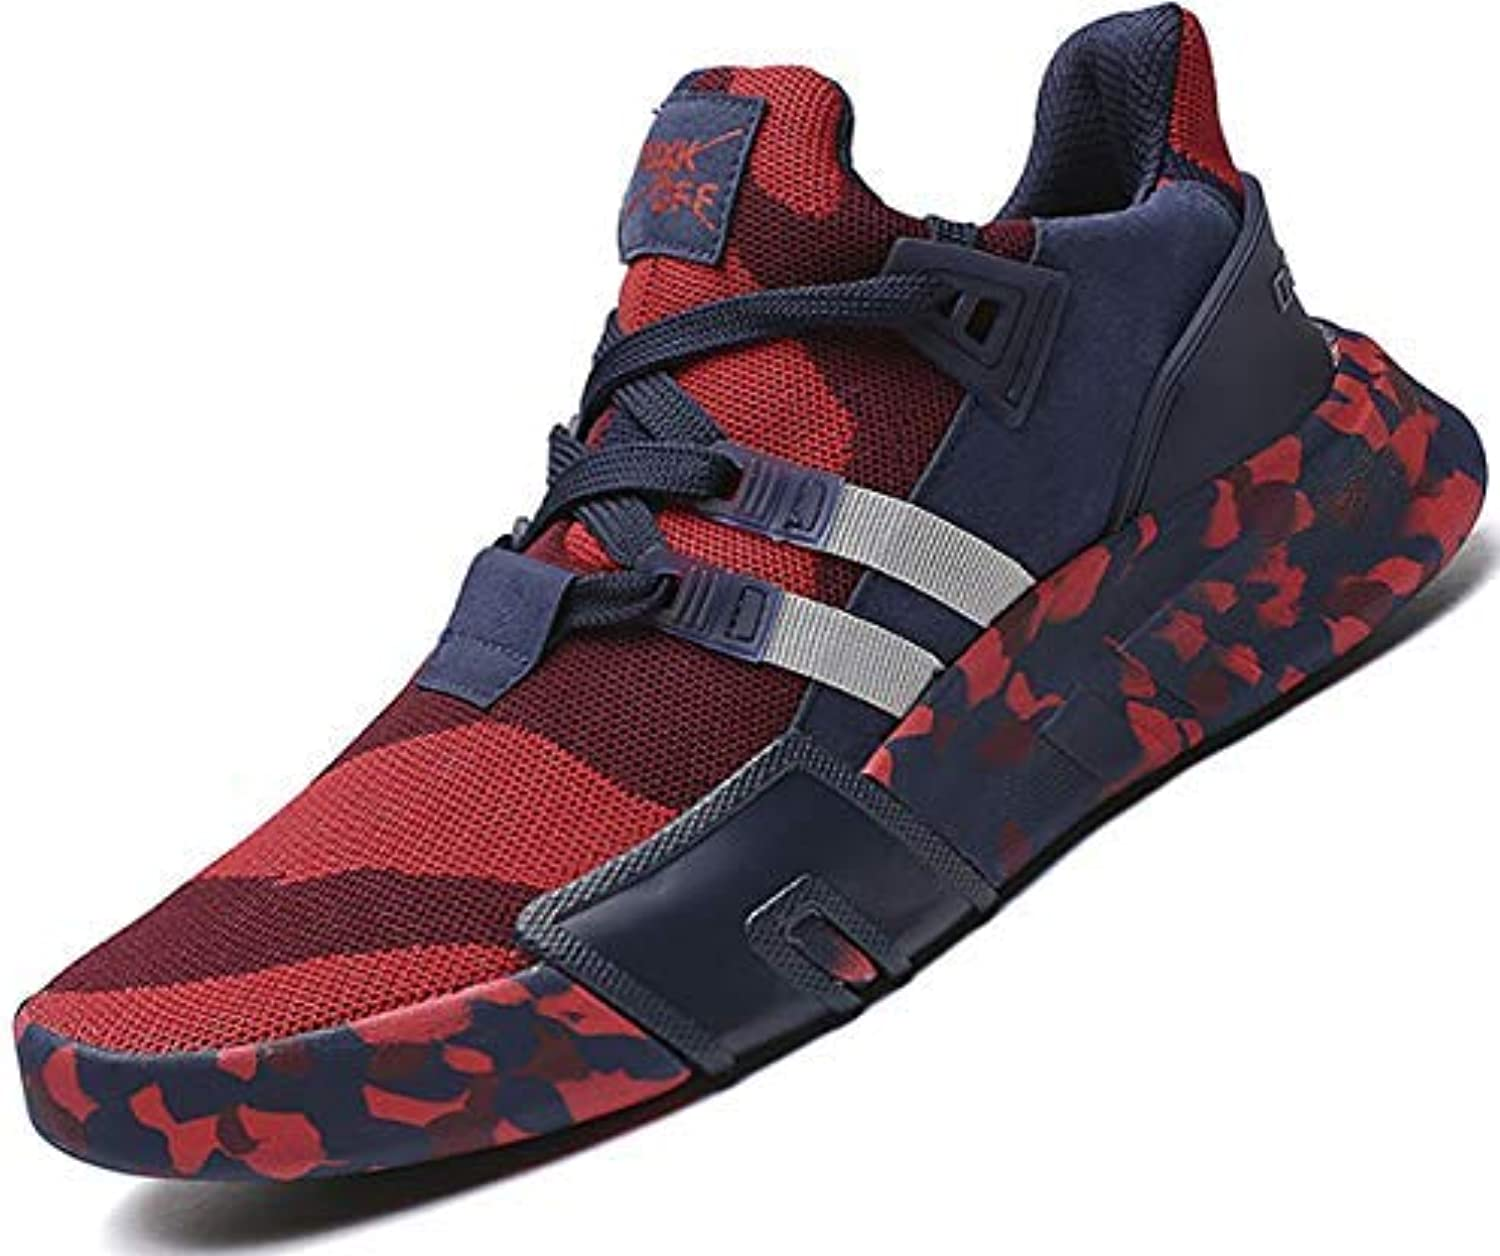 SKDOIUL Fashion Mesh Walking Sneakers for Youth Boys Lightweight Breathable Trail Sport Running shoes Red Size 11 (1818-Red-45)